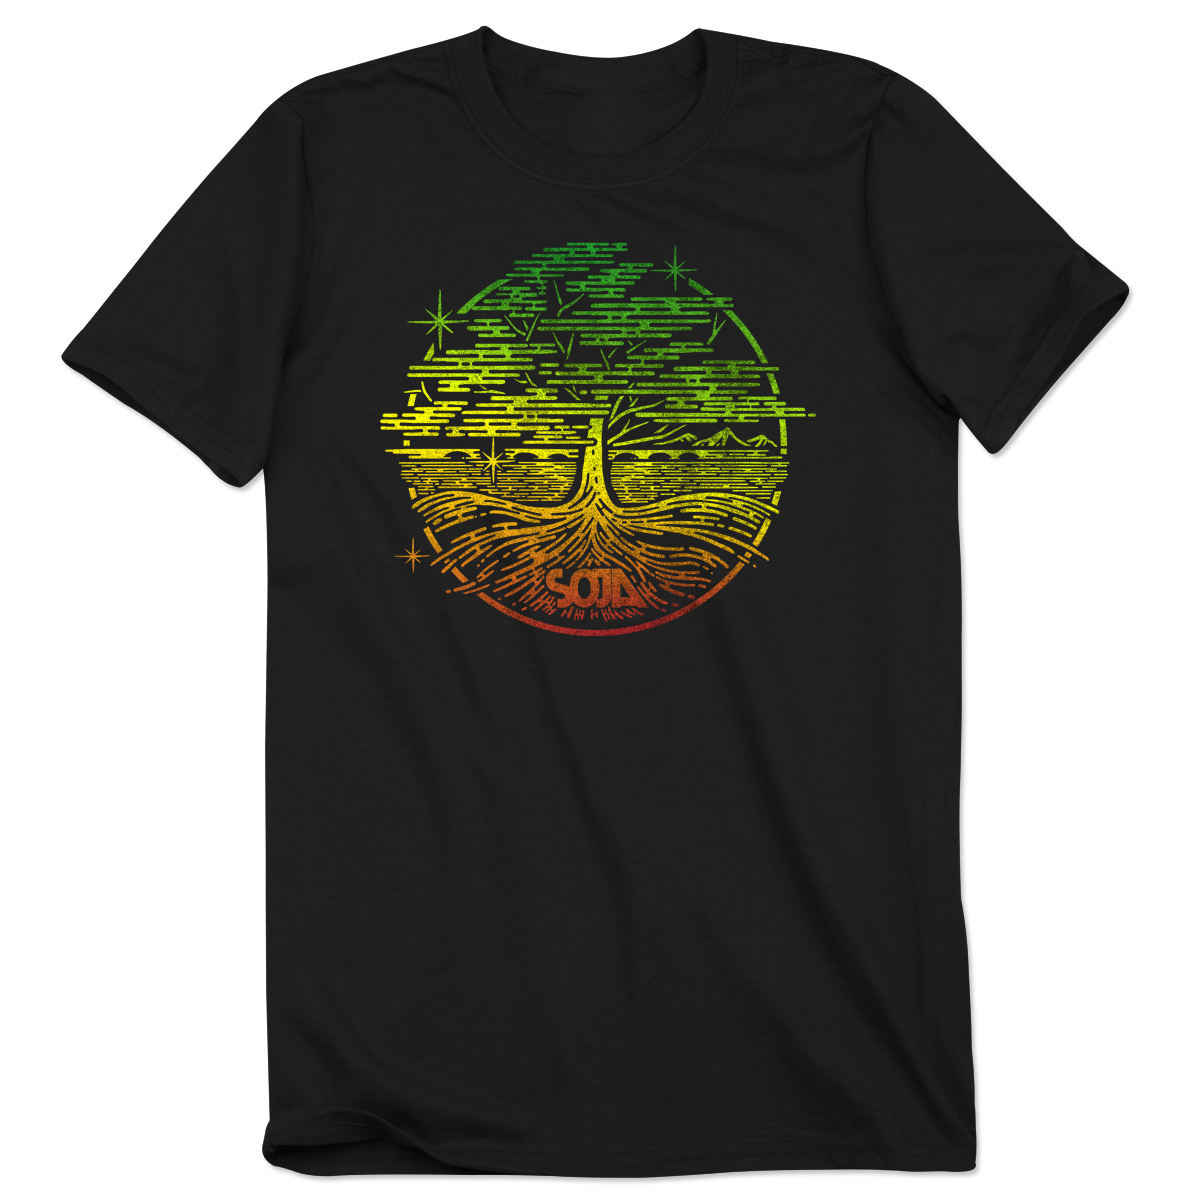 SOJA VA Tree Black Tee